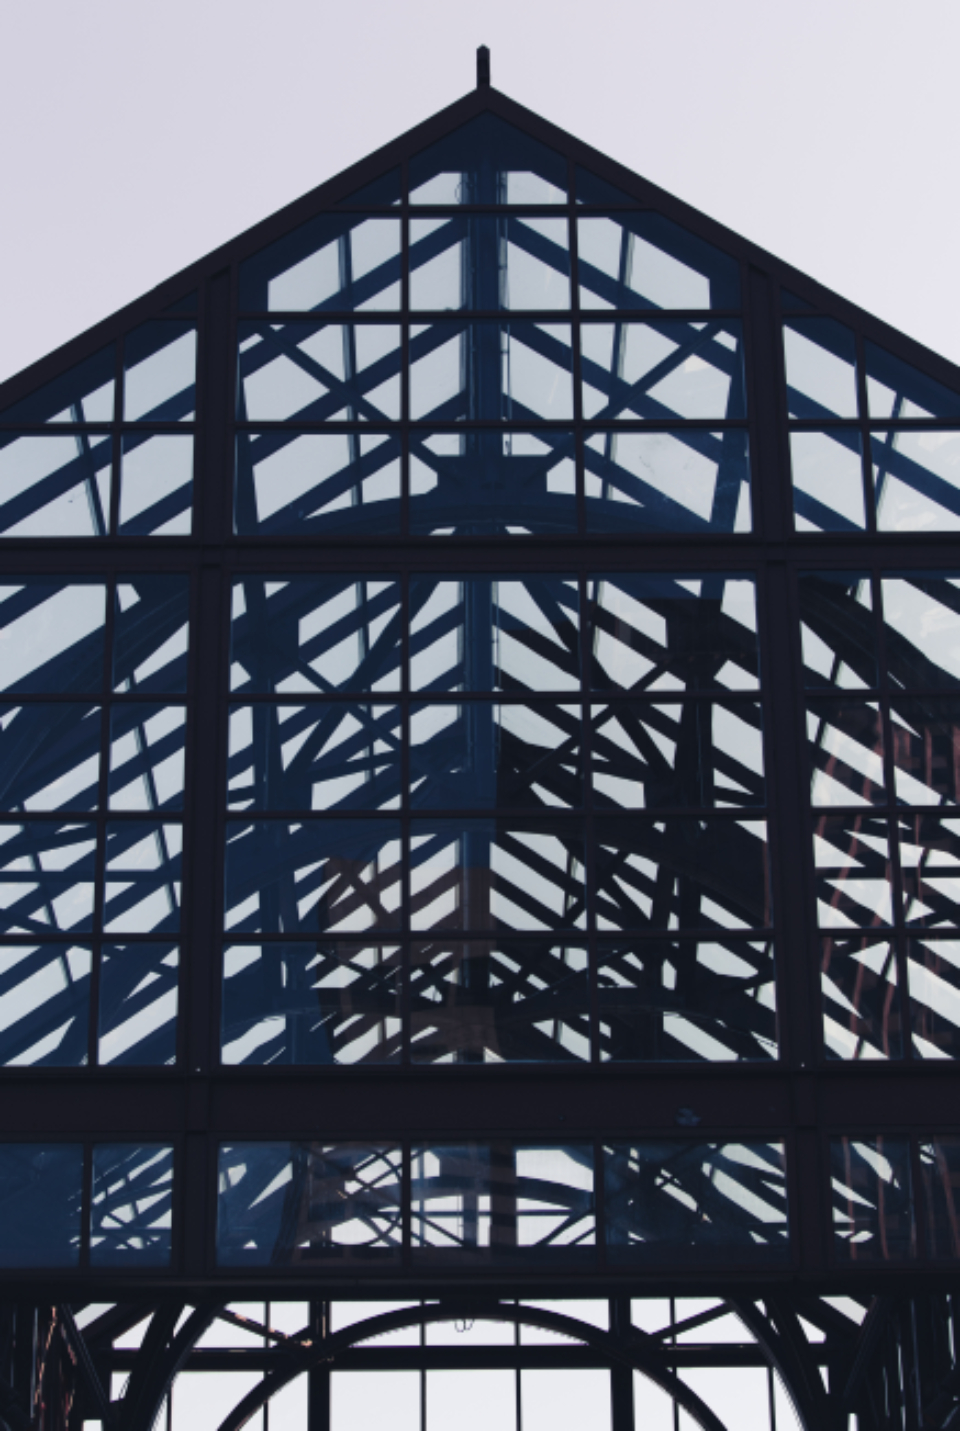 architecture building infrastructure structure windows roof beams metal glass silhouette peak modern design city pattern engineering